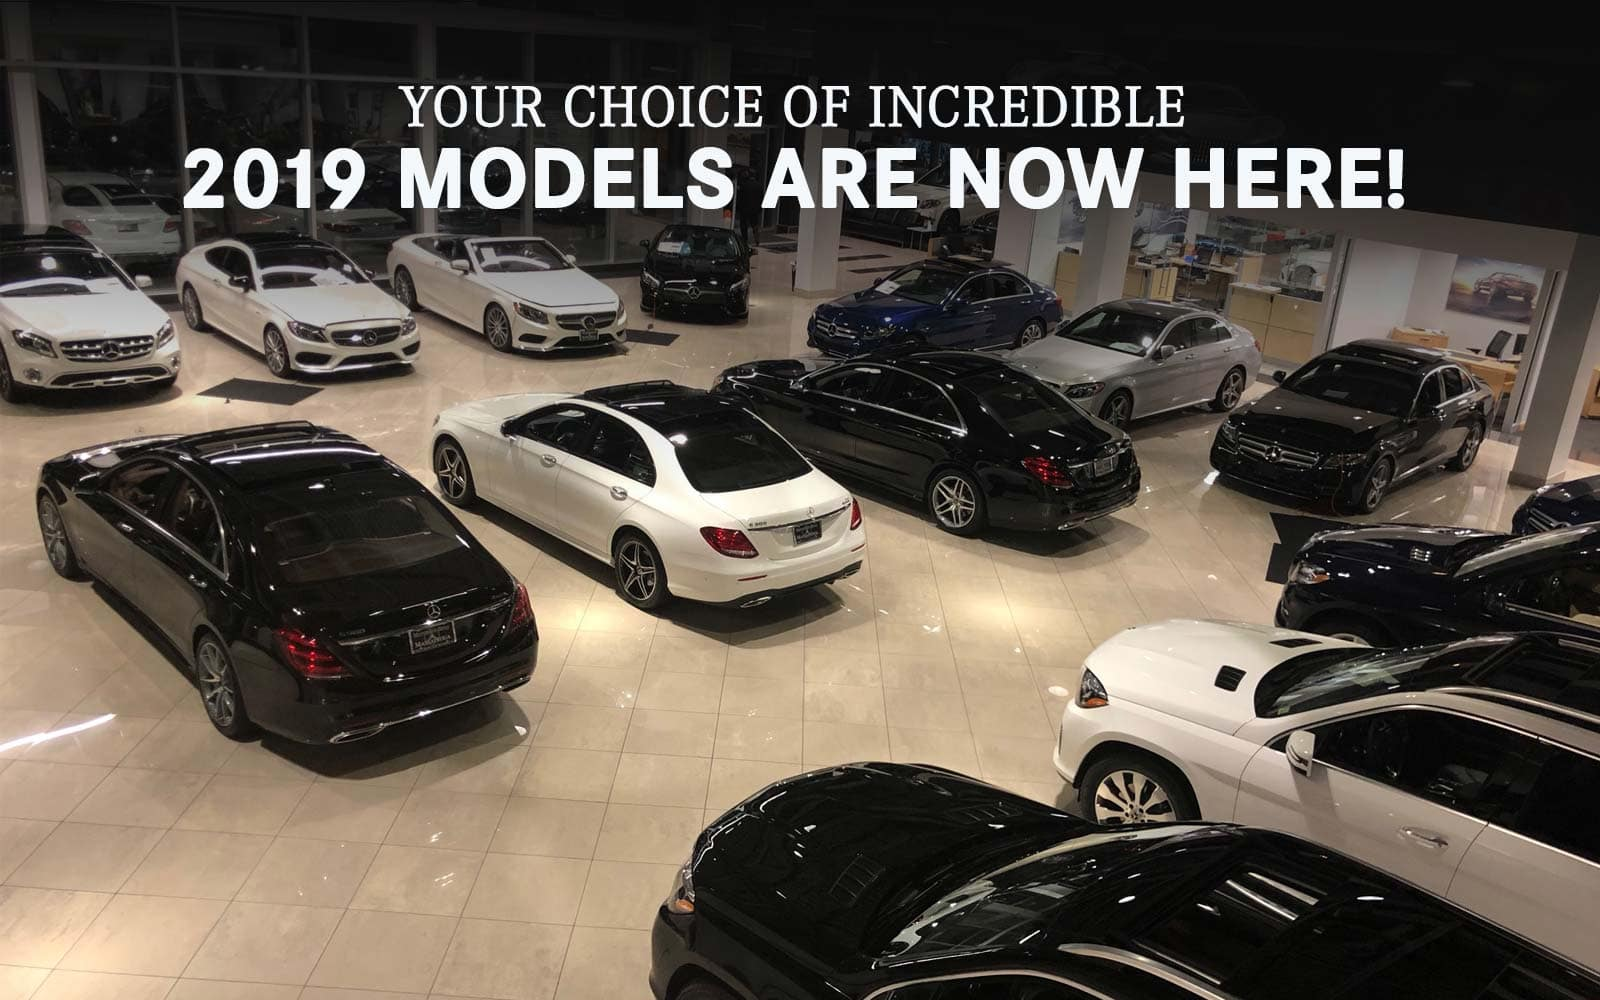 2019 Models Are Now Here